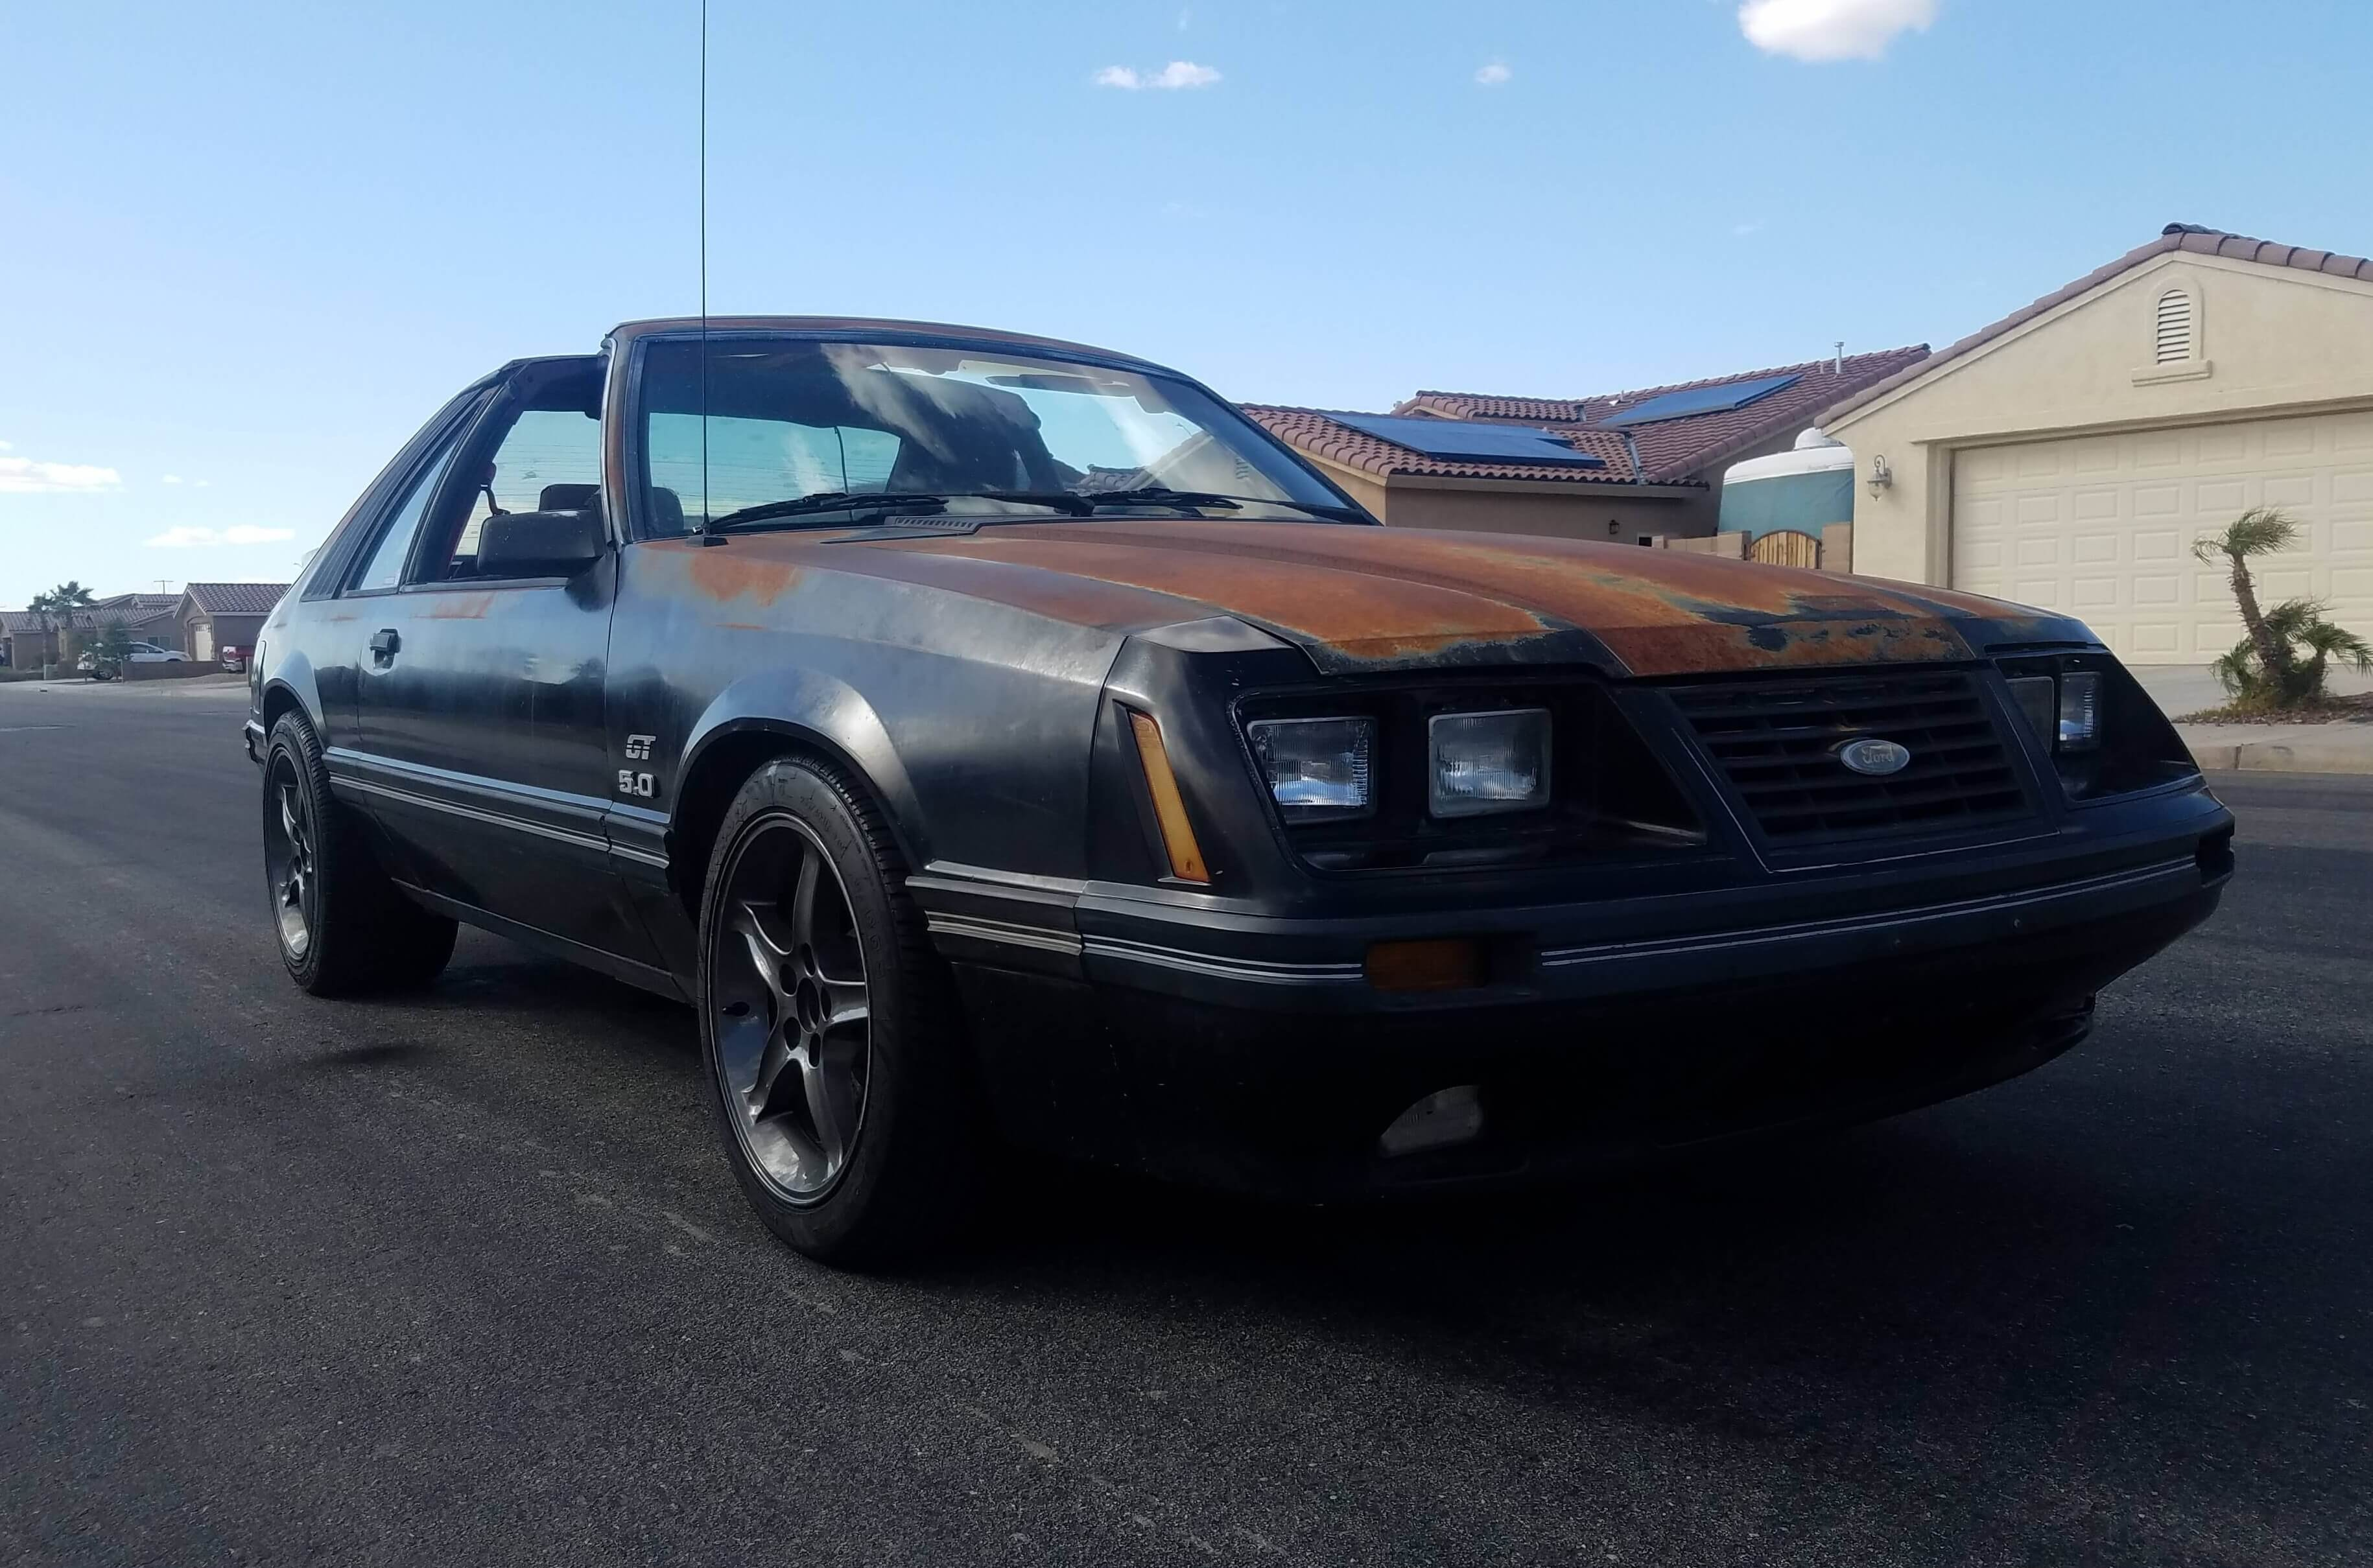 Nelson's 1984 Ford Mustang - Holley My Garage